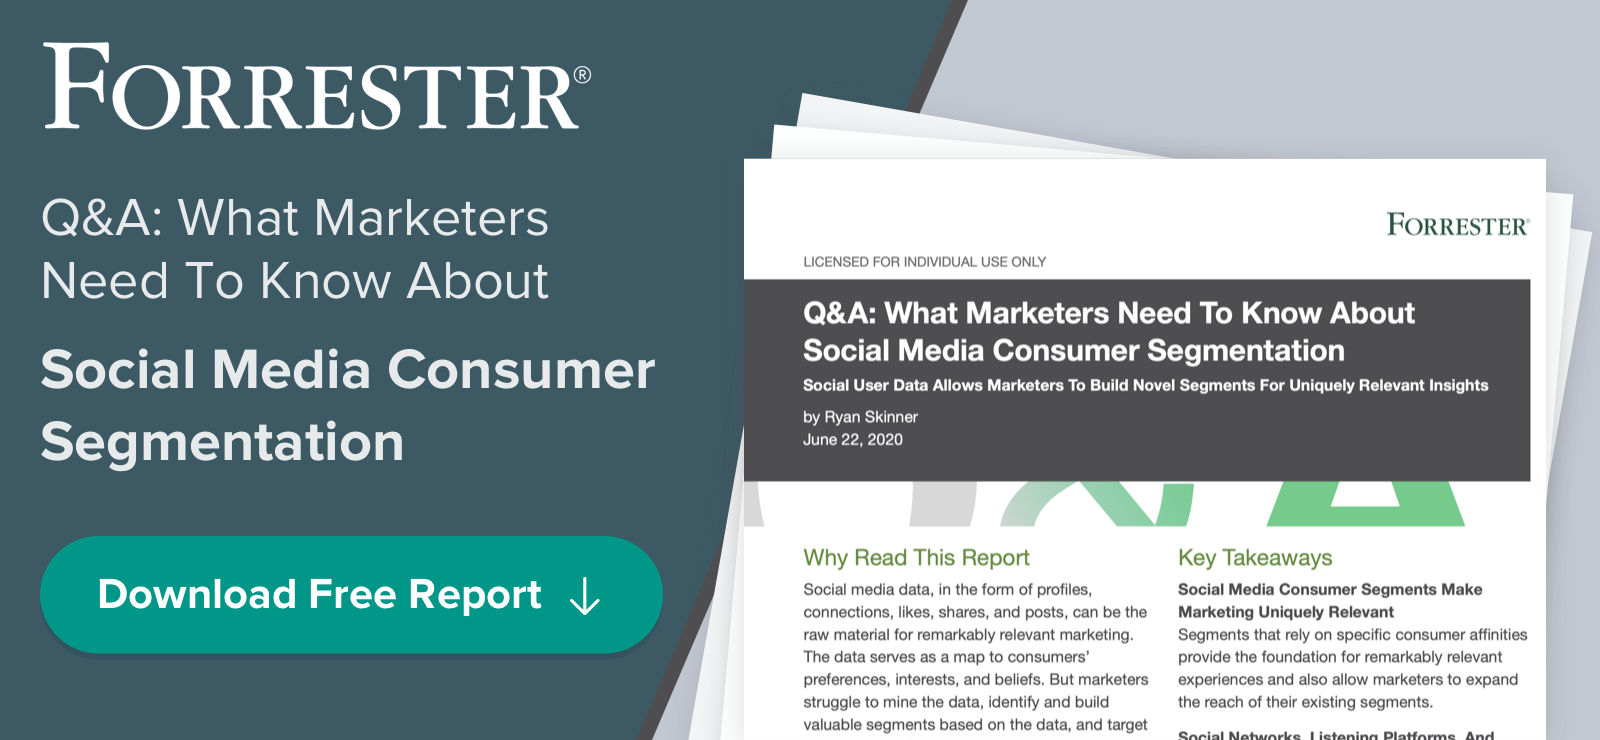 Forrester Report - Q&A: What Marketers Need To Know About Social Media Consumer Segmentation - Download Free Report